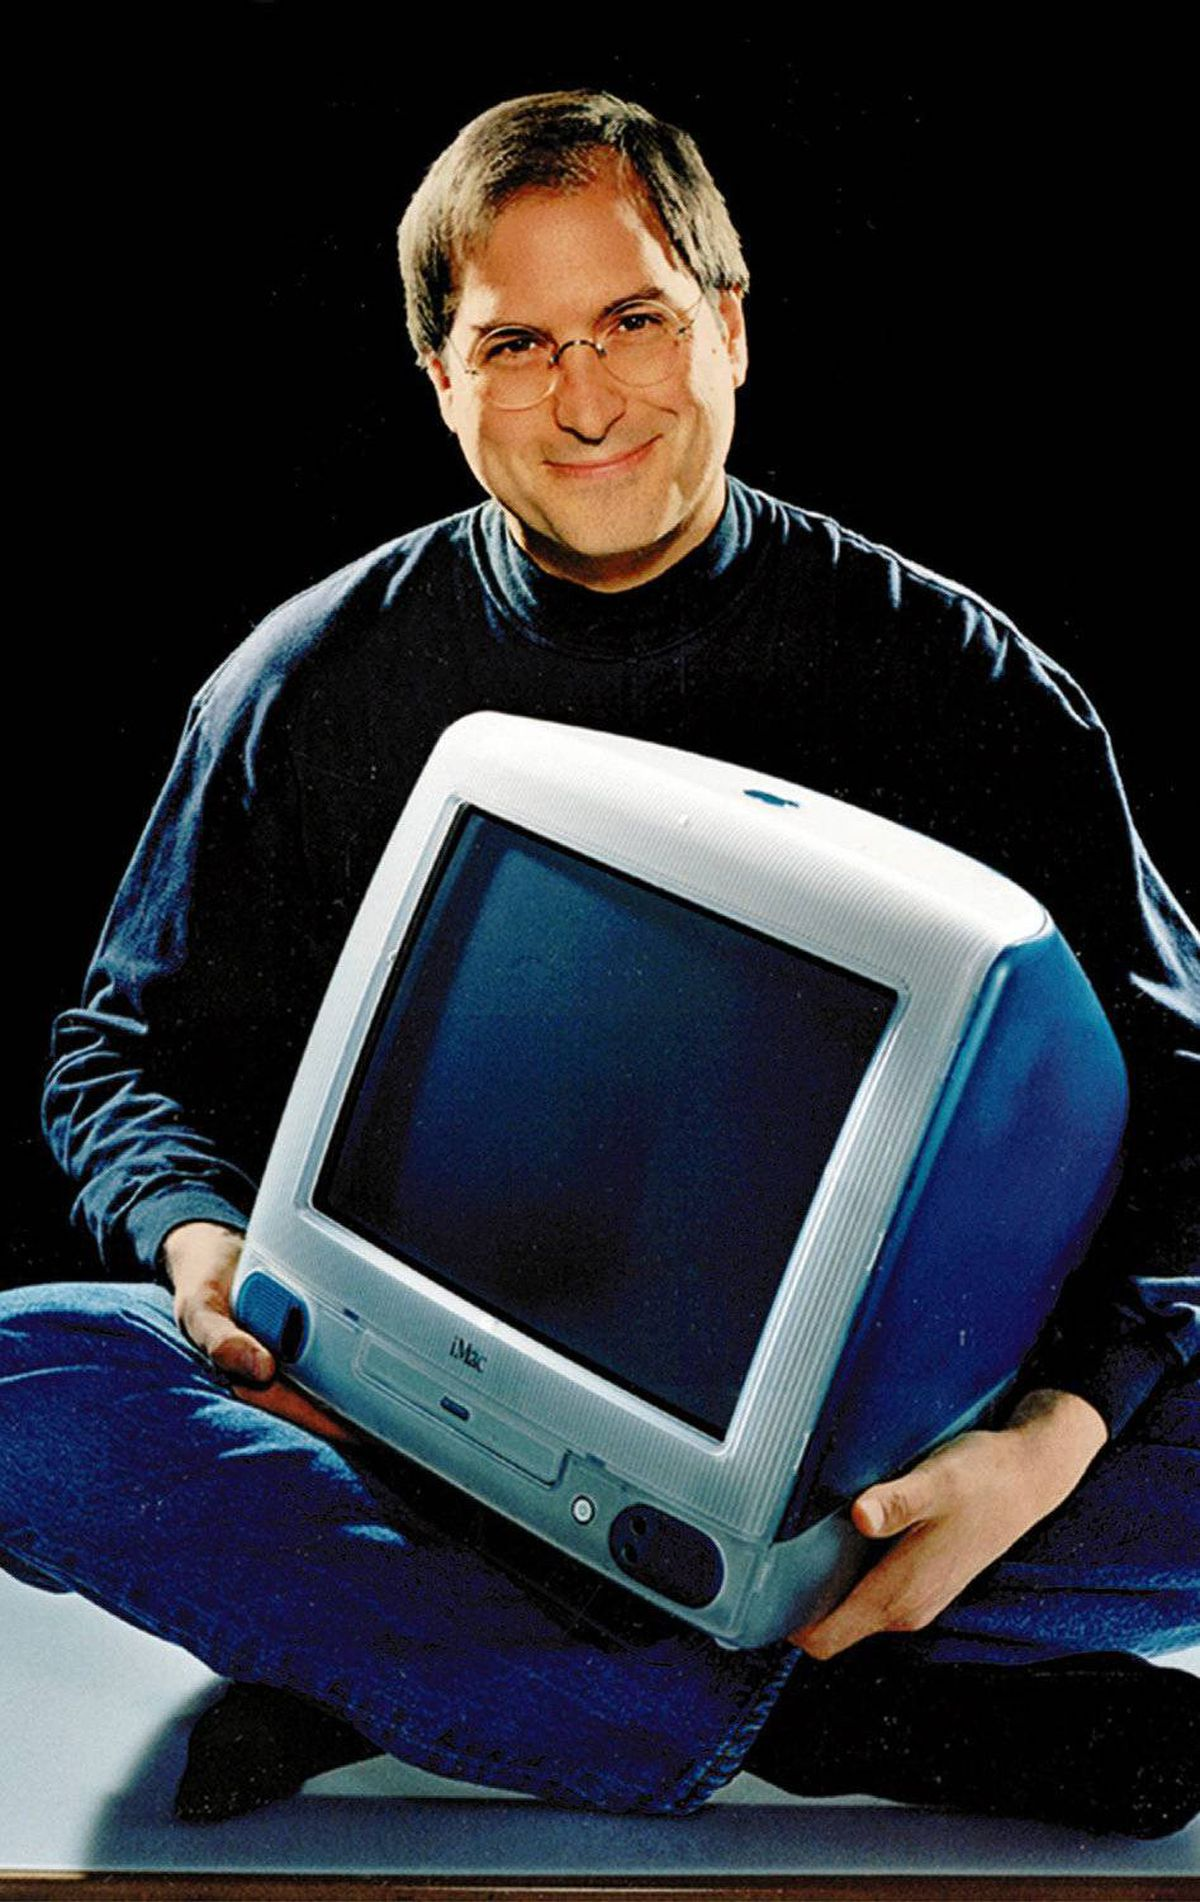 FILE - This 1998 file photo provided by Apple shows Apple CEO Steve Jobs holding an iMac computer. Apple Inc. on Wednesday, Aug. 24, 2011 said Jobs is resigning as CEO, effective immediately. He will be replaced by Tim Cook, who was the company's chief operating officer. It said Jobs has been elected as Apple's chairman. (AP Photo/Moshe Brakha, File)